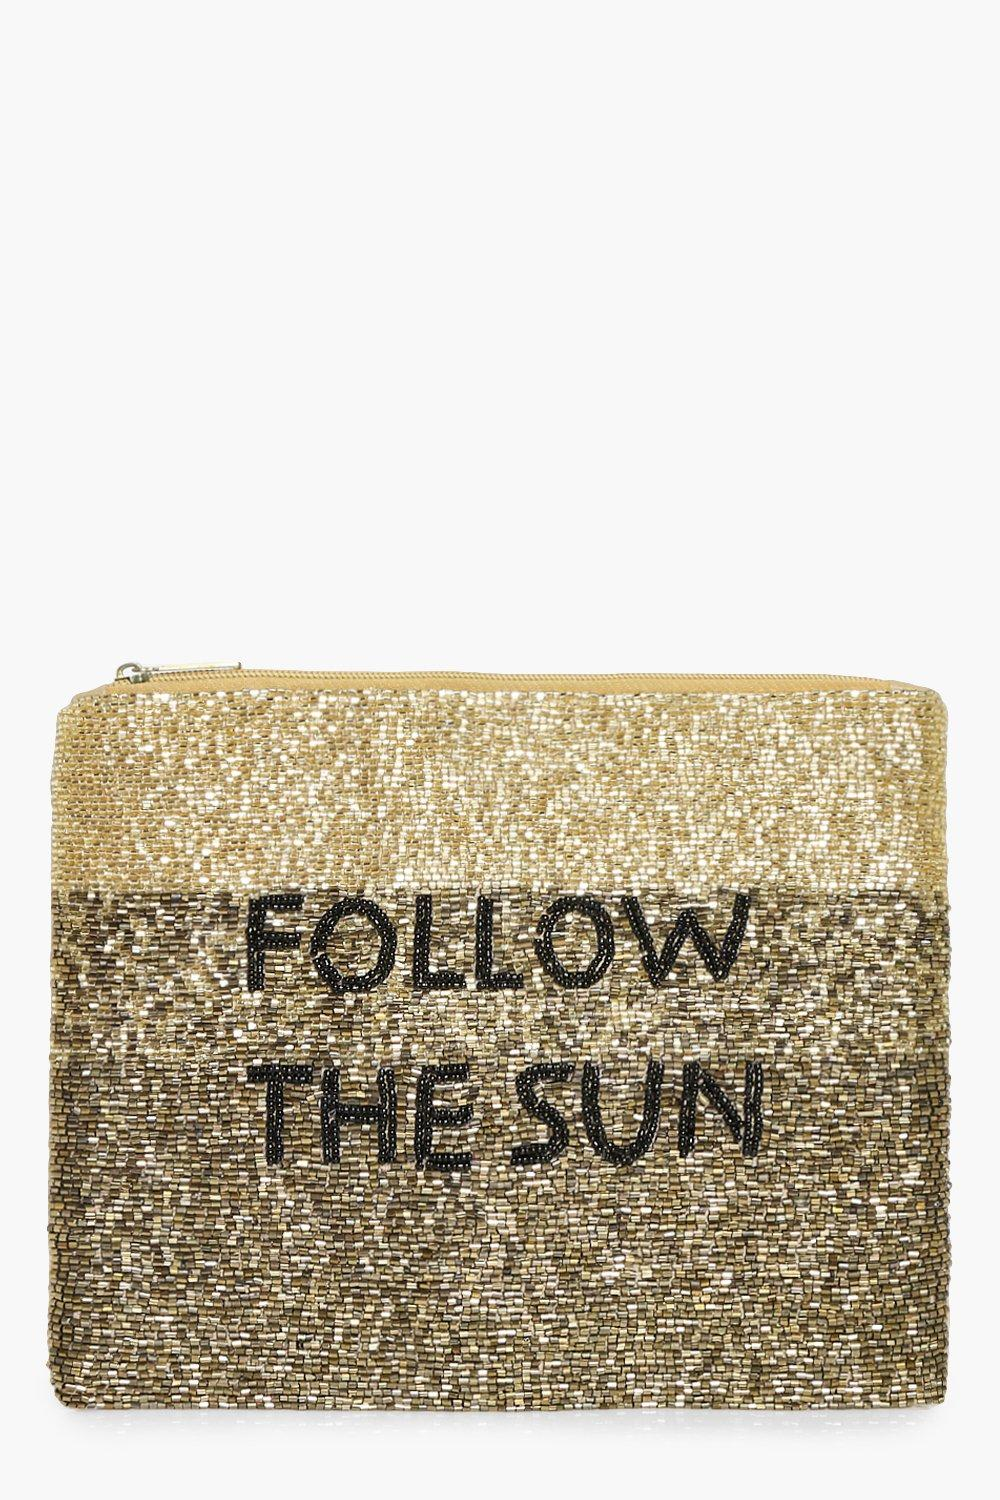 Follow the Sun Slogan Embellished Clutch - gold -